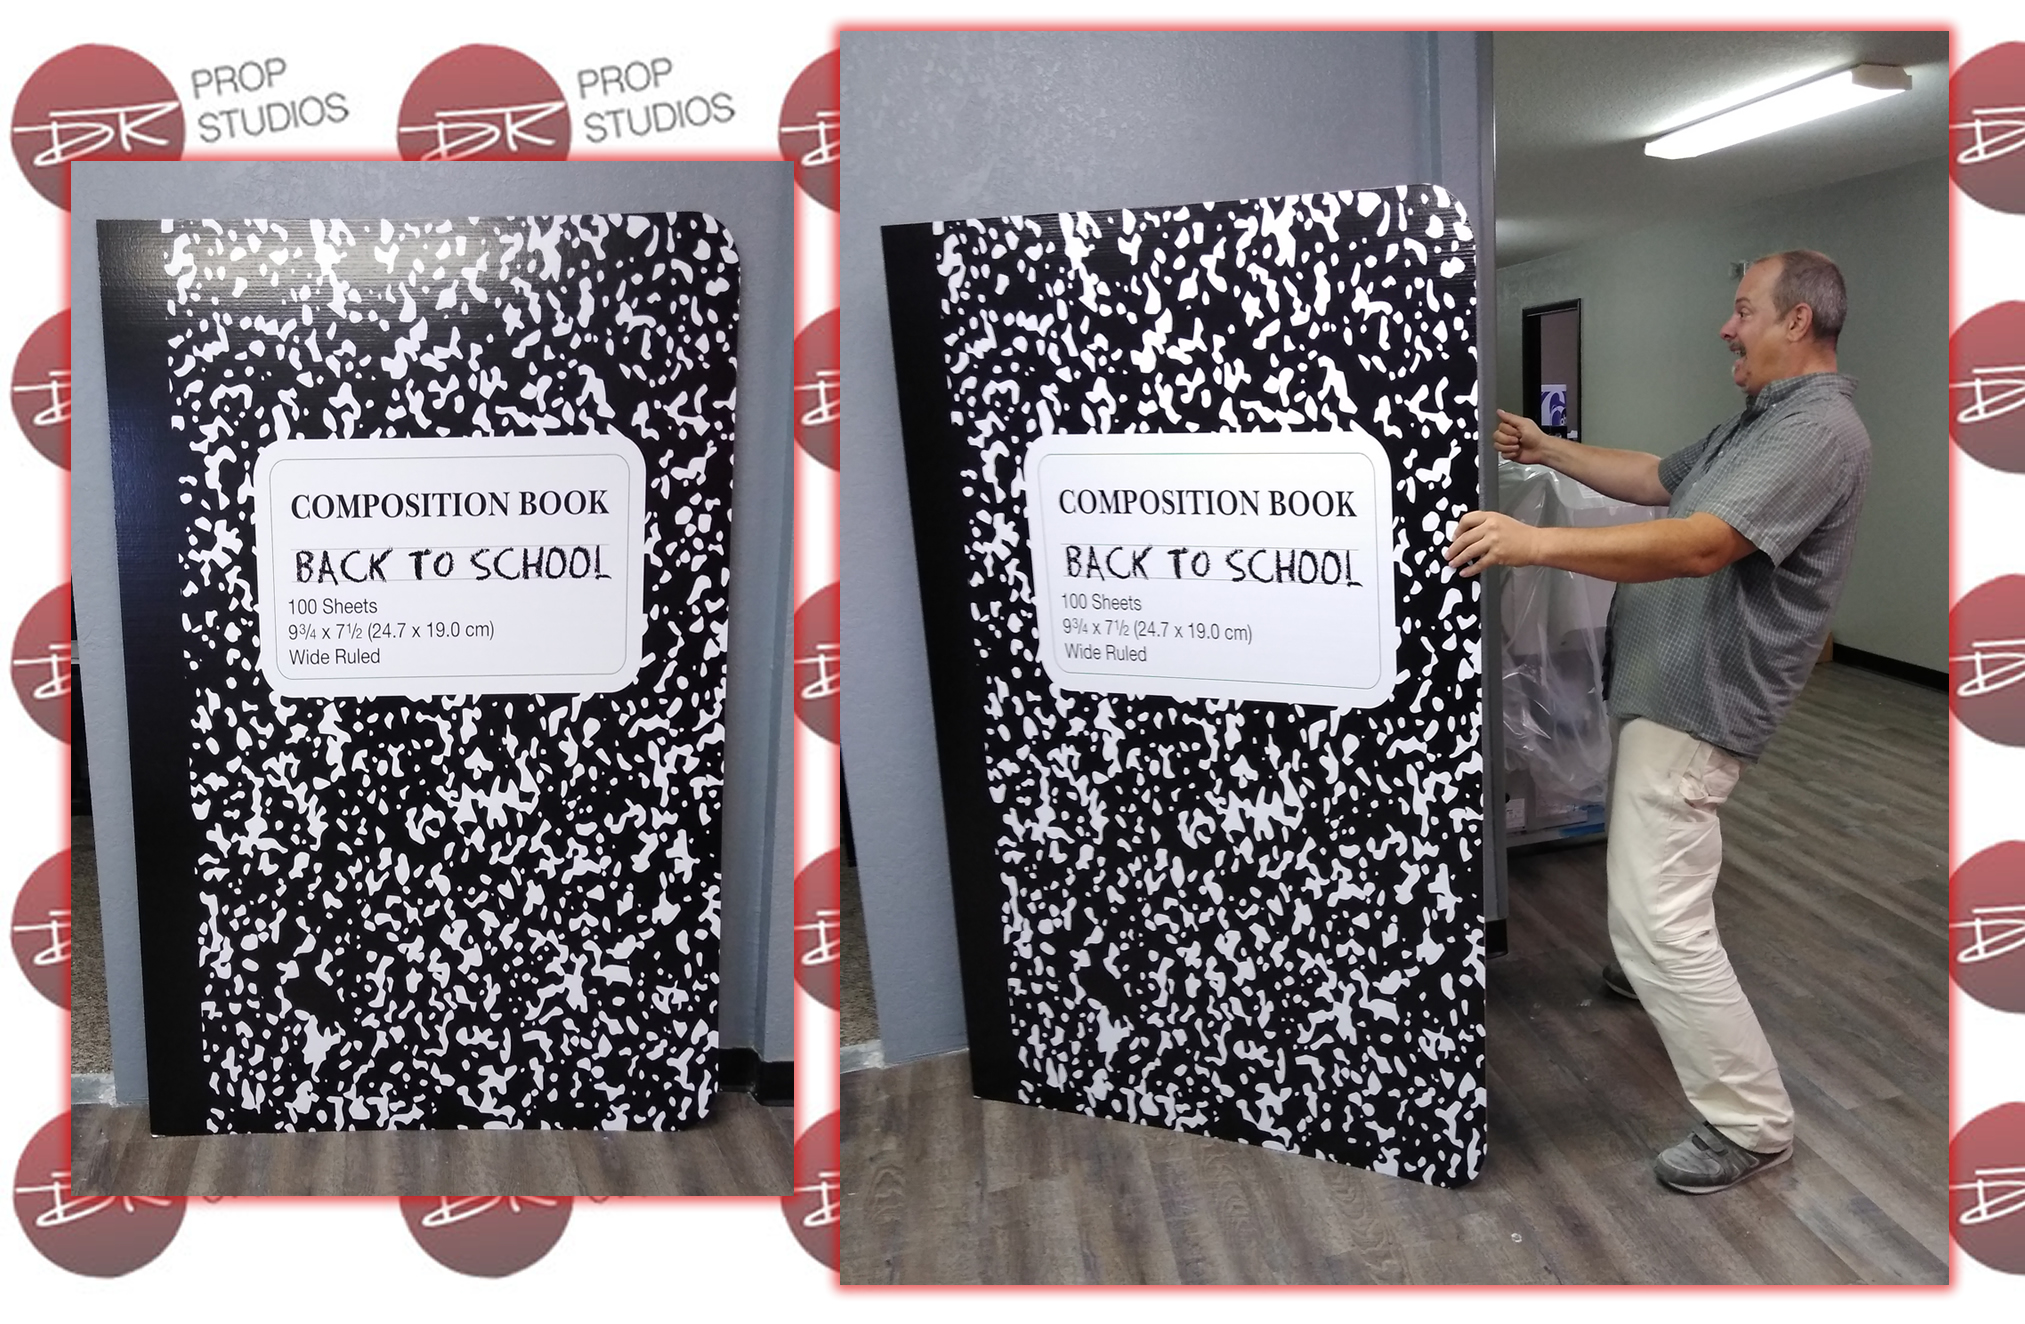 Back To School Composition Notebook Cardboard Standup Prop Display